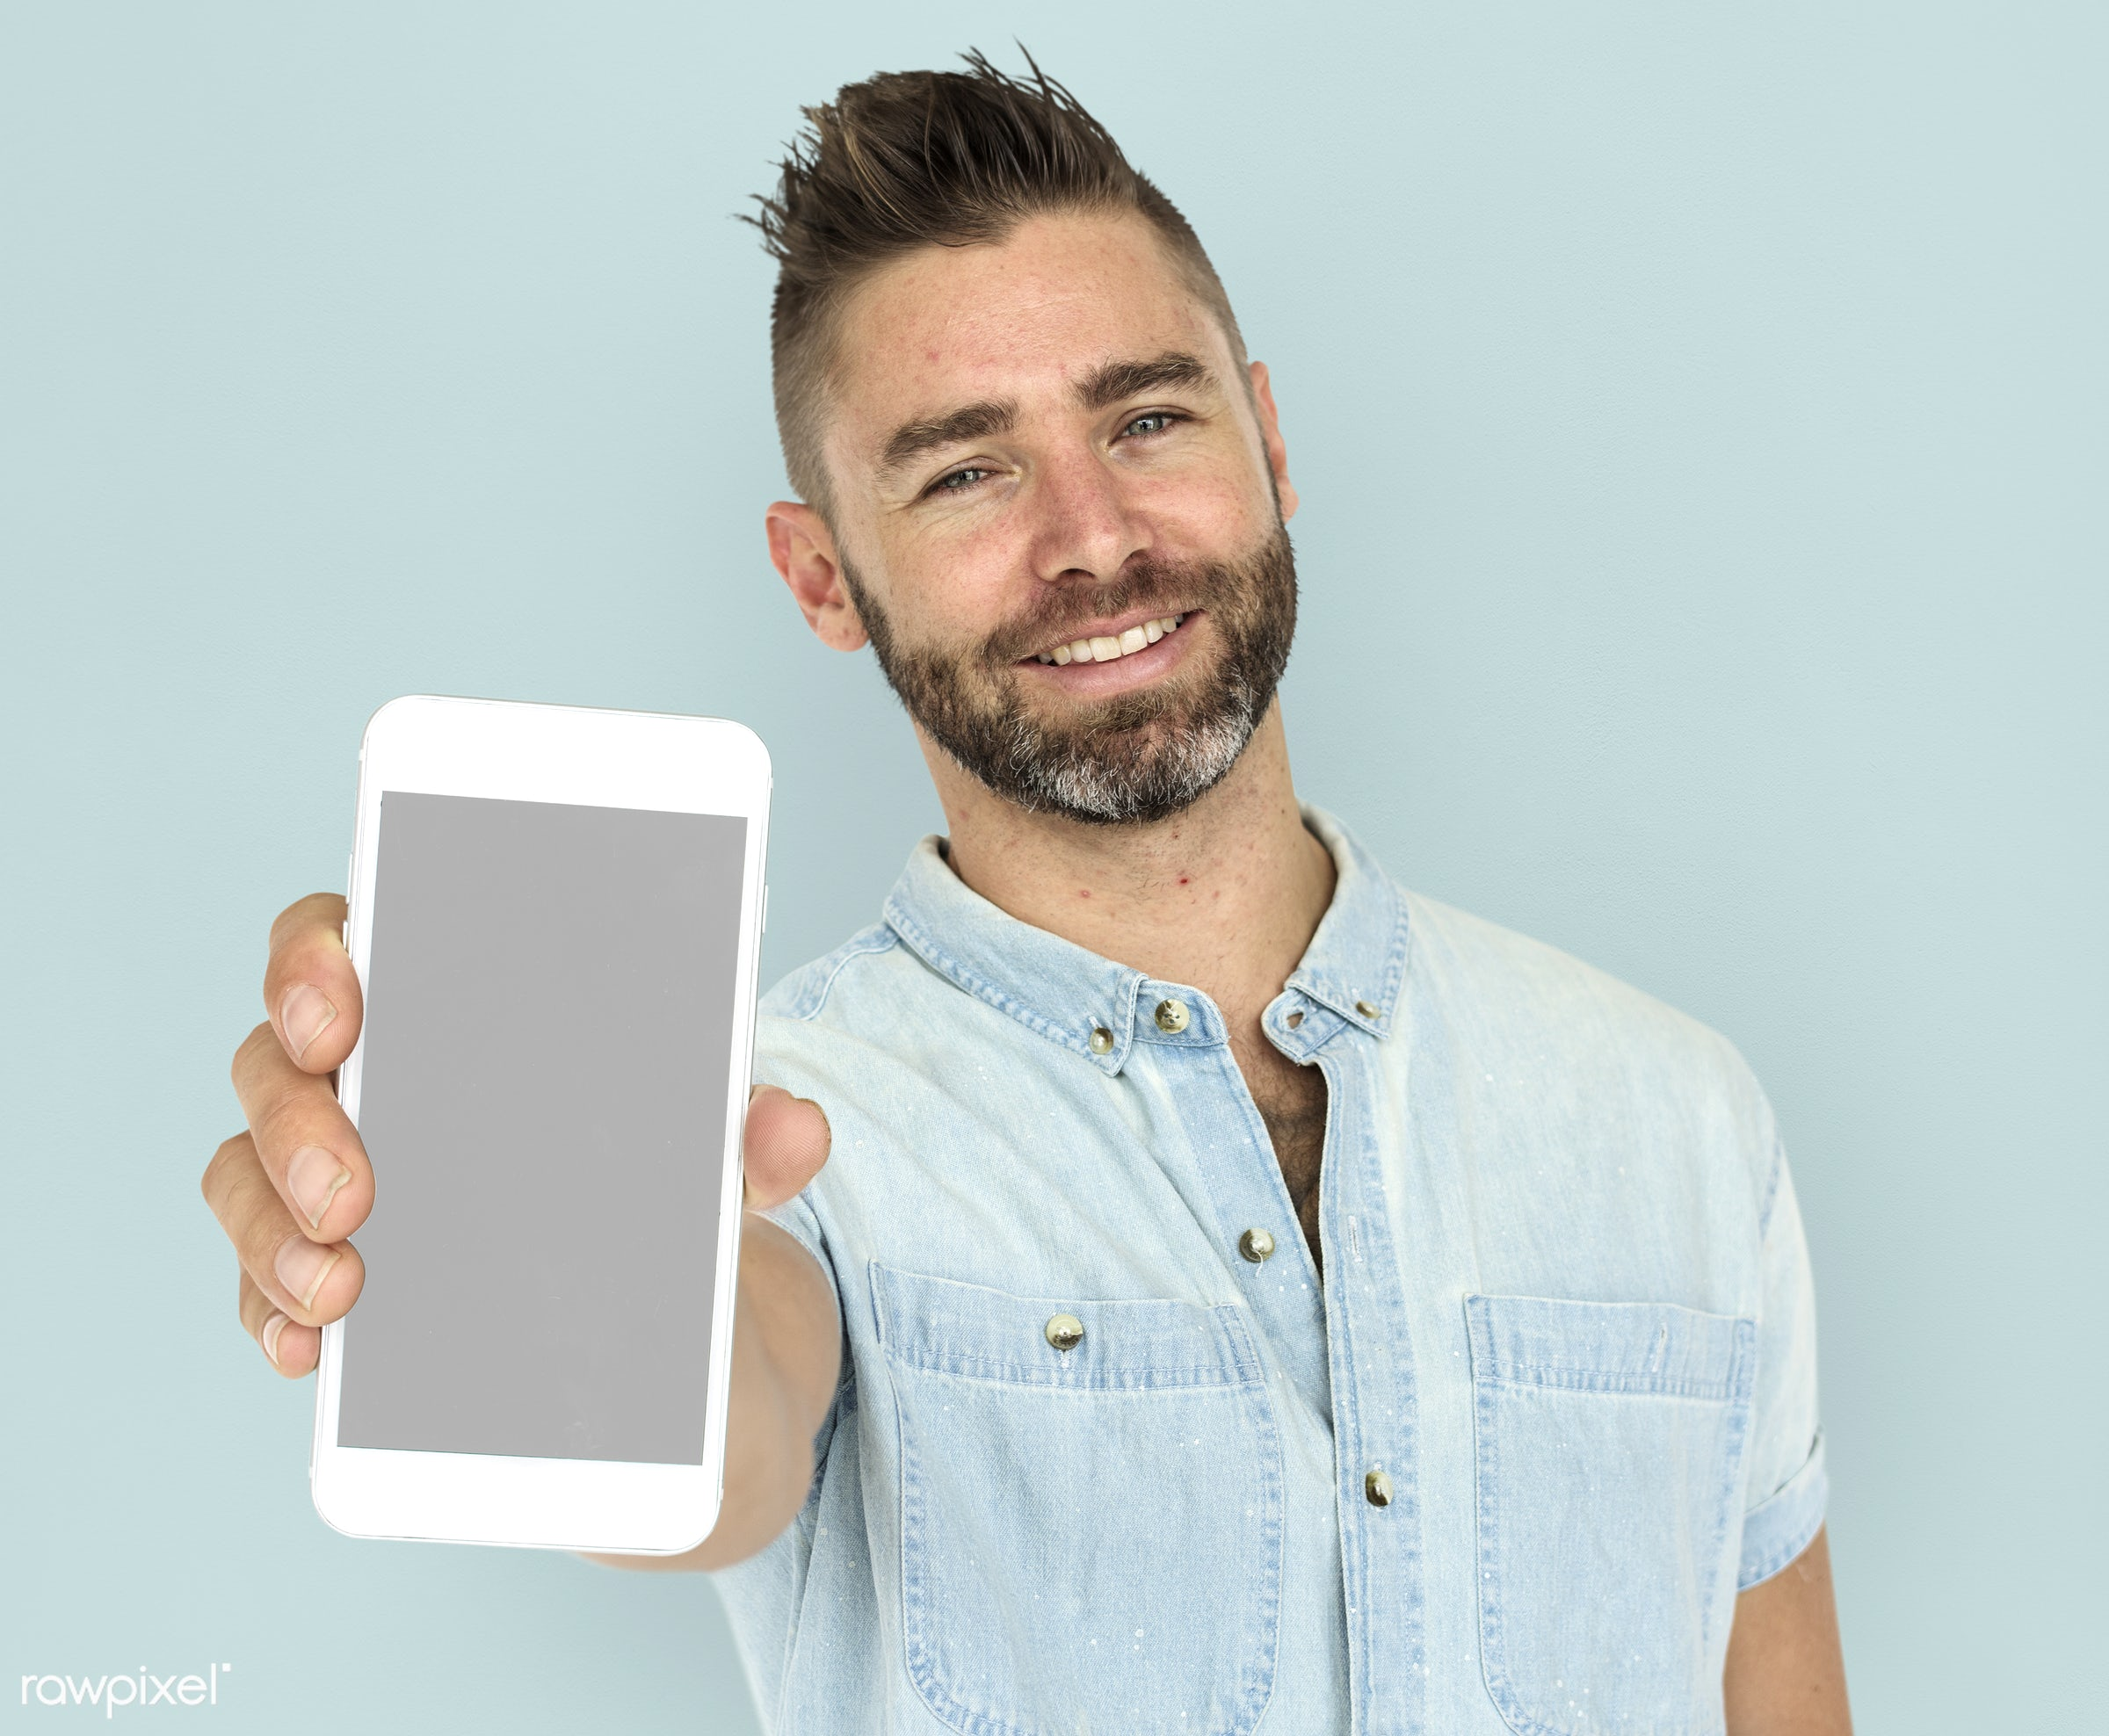 expression, studio, person, phone, technology, portable, holding, people, positivity, caucasian, mobile phone, positive,...